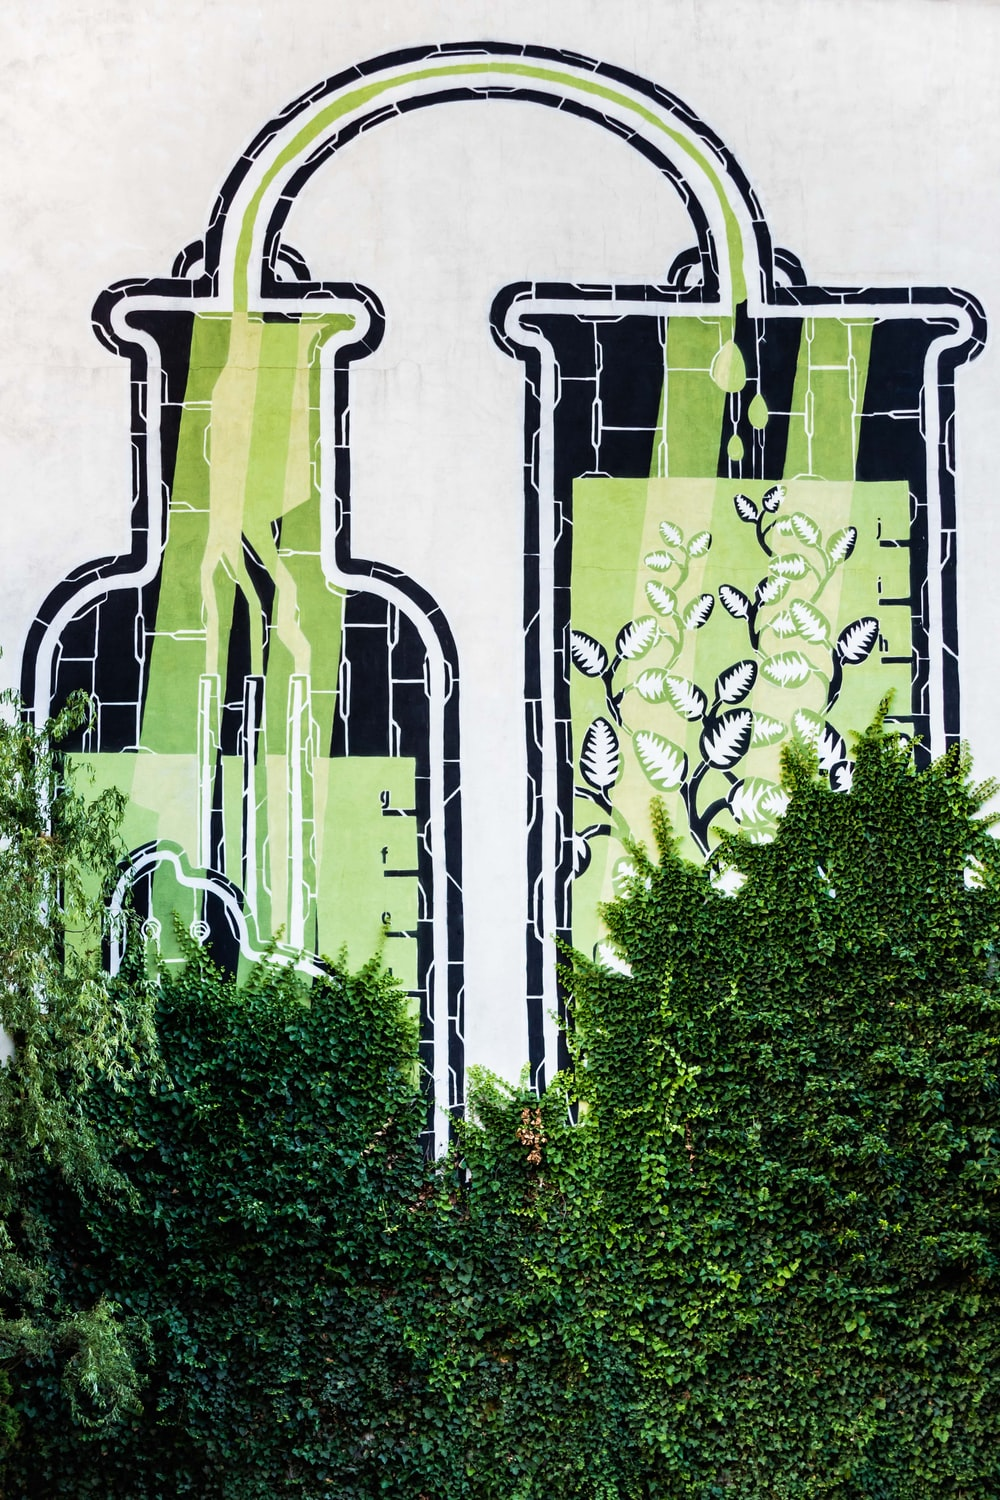 street art and green leafed plant